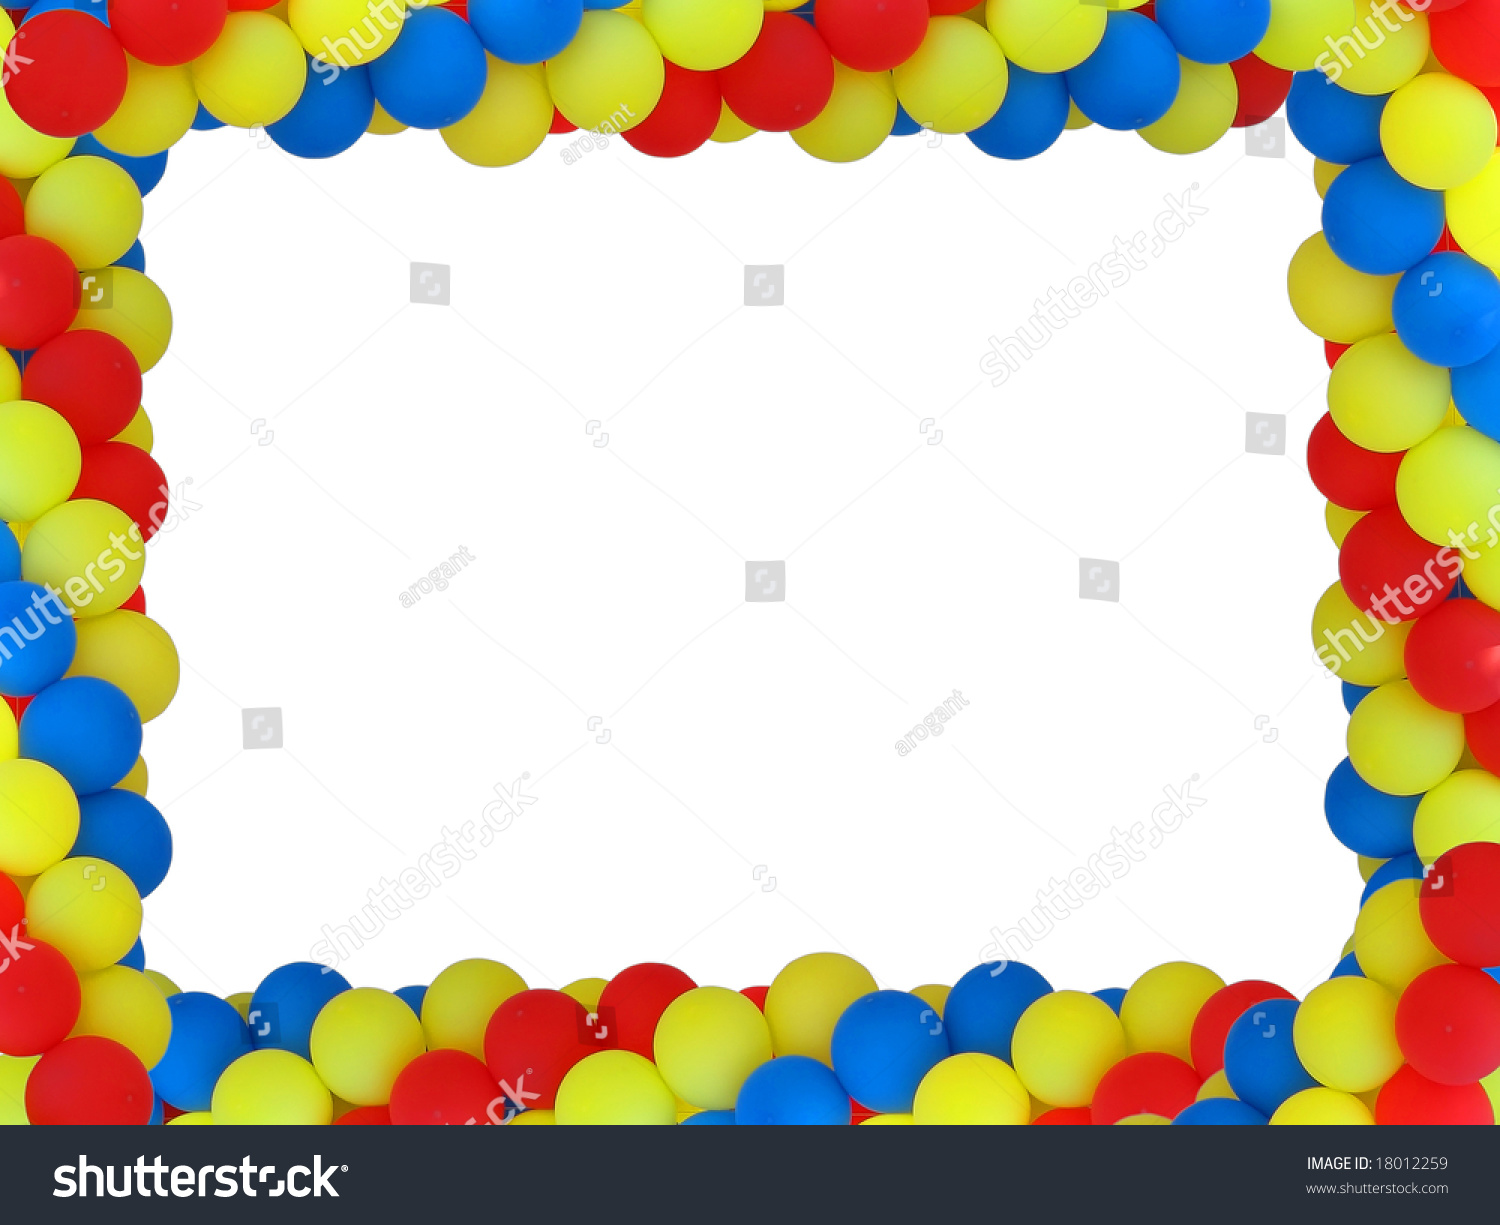 colored balloon frame with empty place for birthday portrait isolated over white